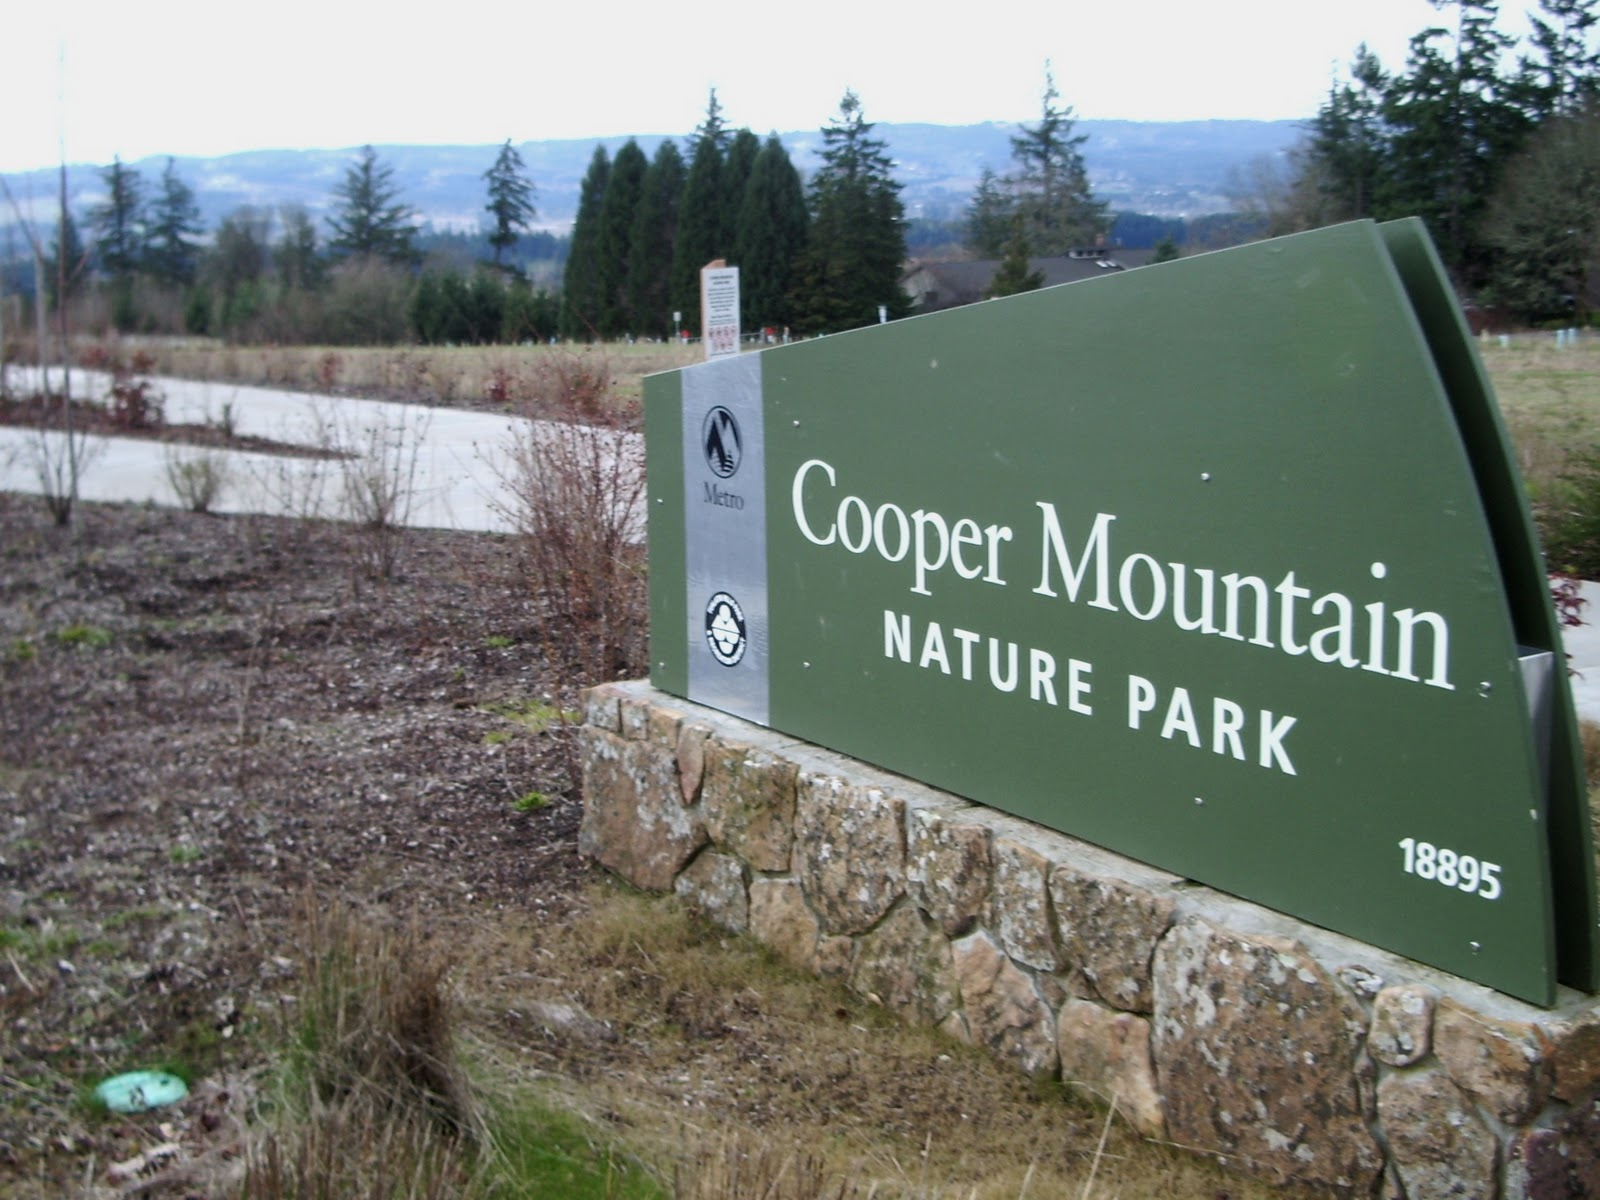 Cooper Mountain Nature Park